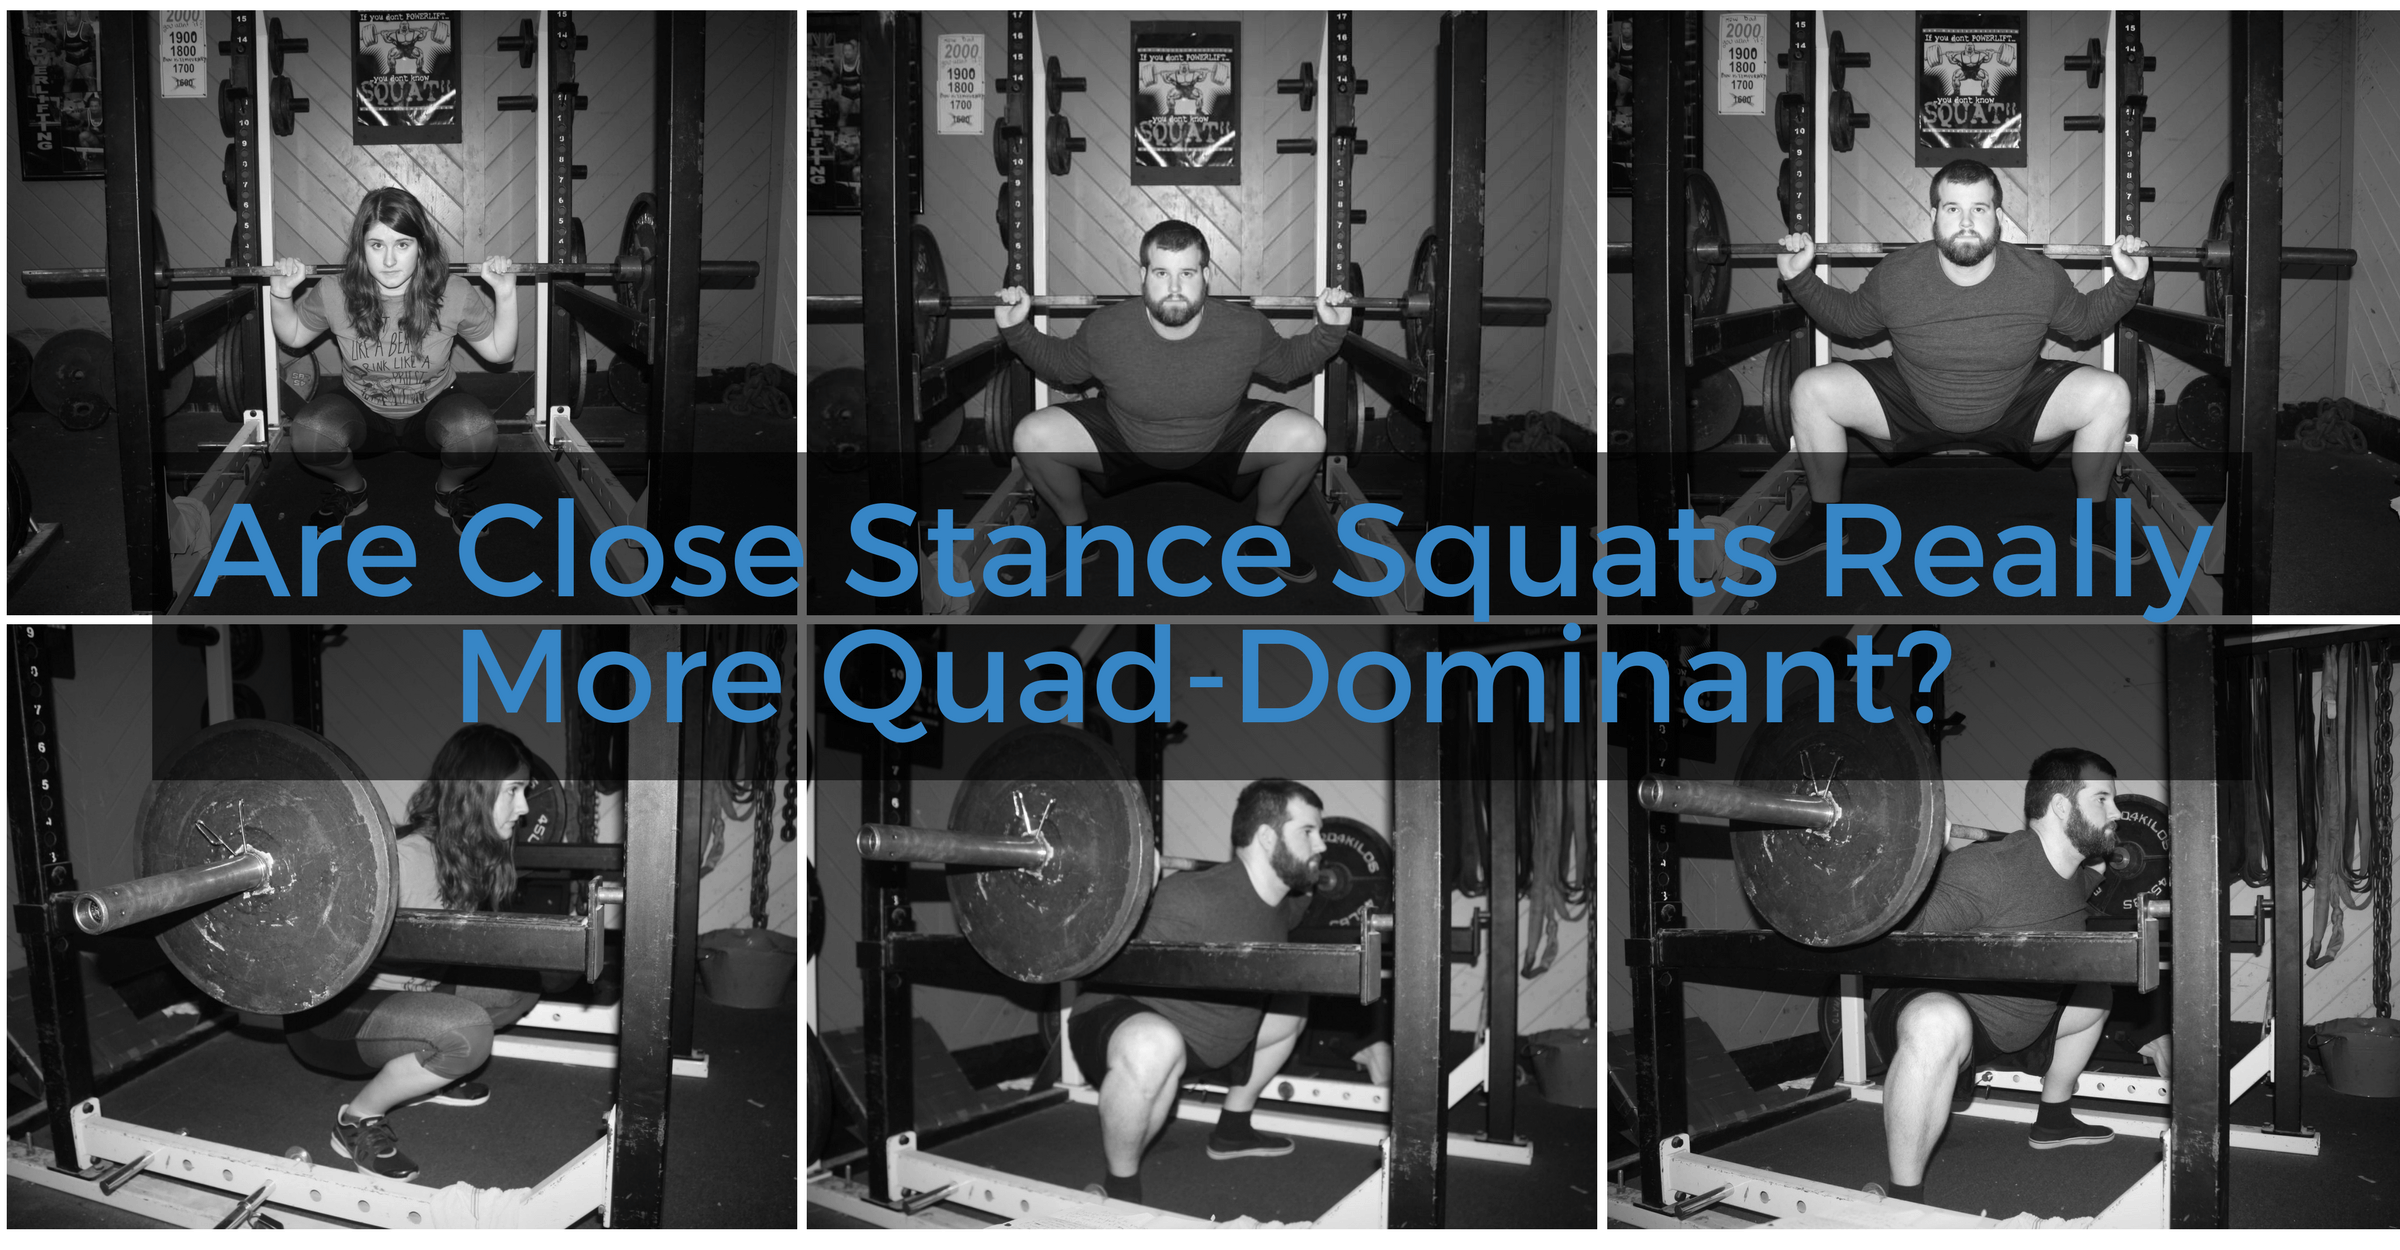 Are Close Stance Squats Really More Quad-Dominant